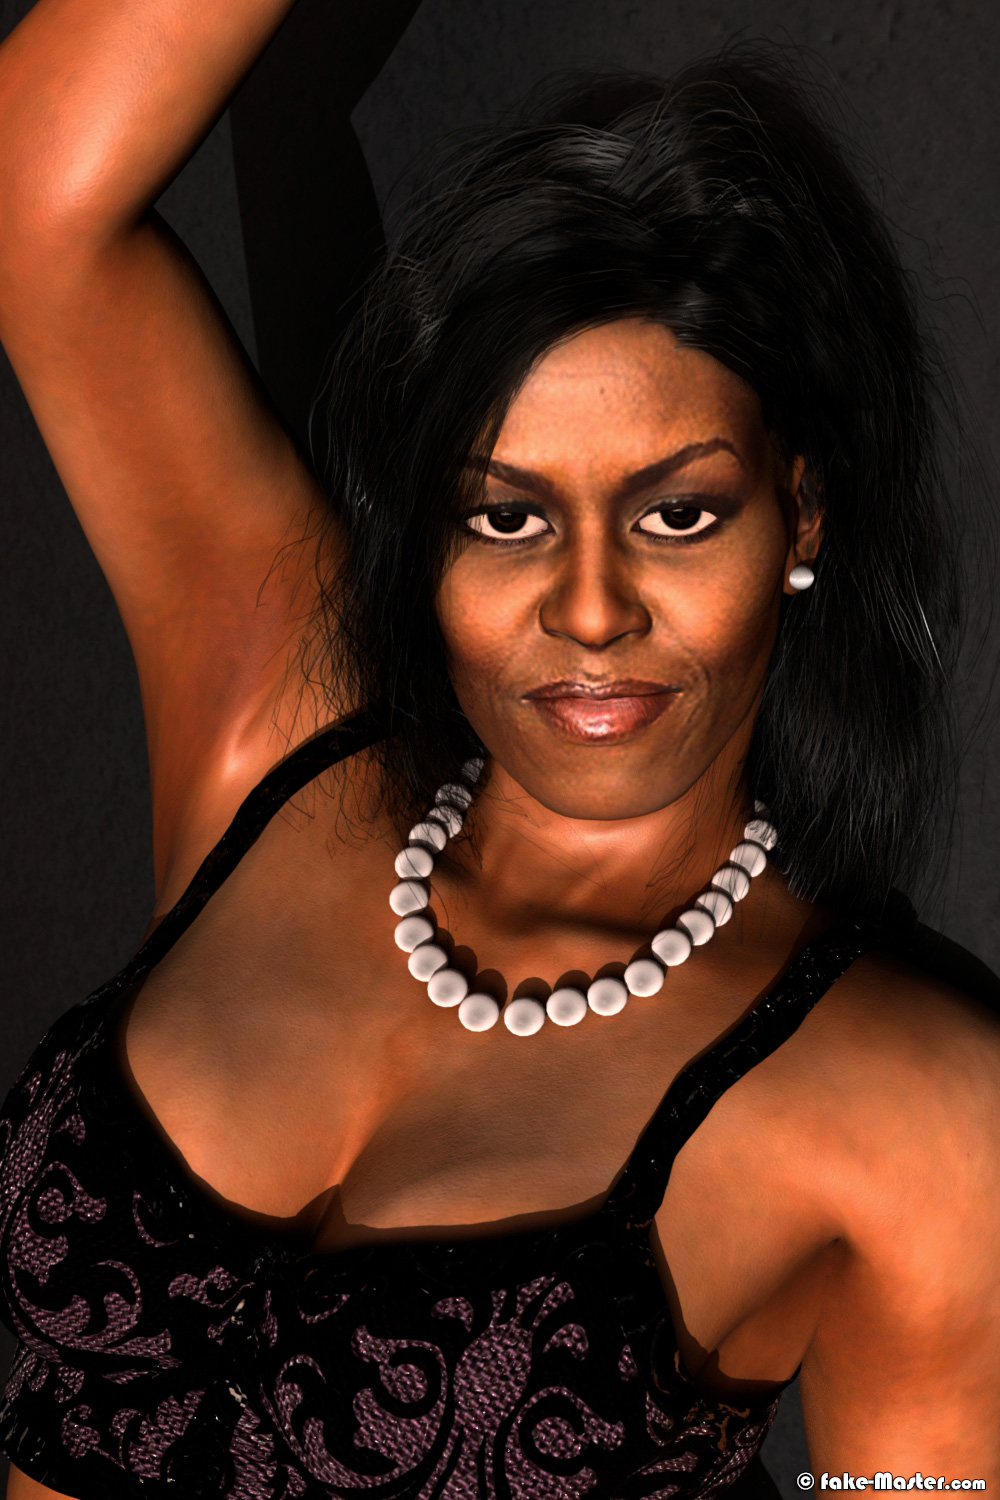 Erotic Michelle Obama by Fake-Master